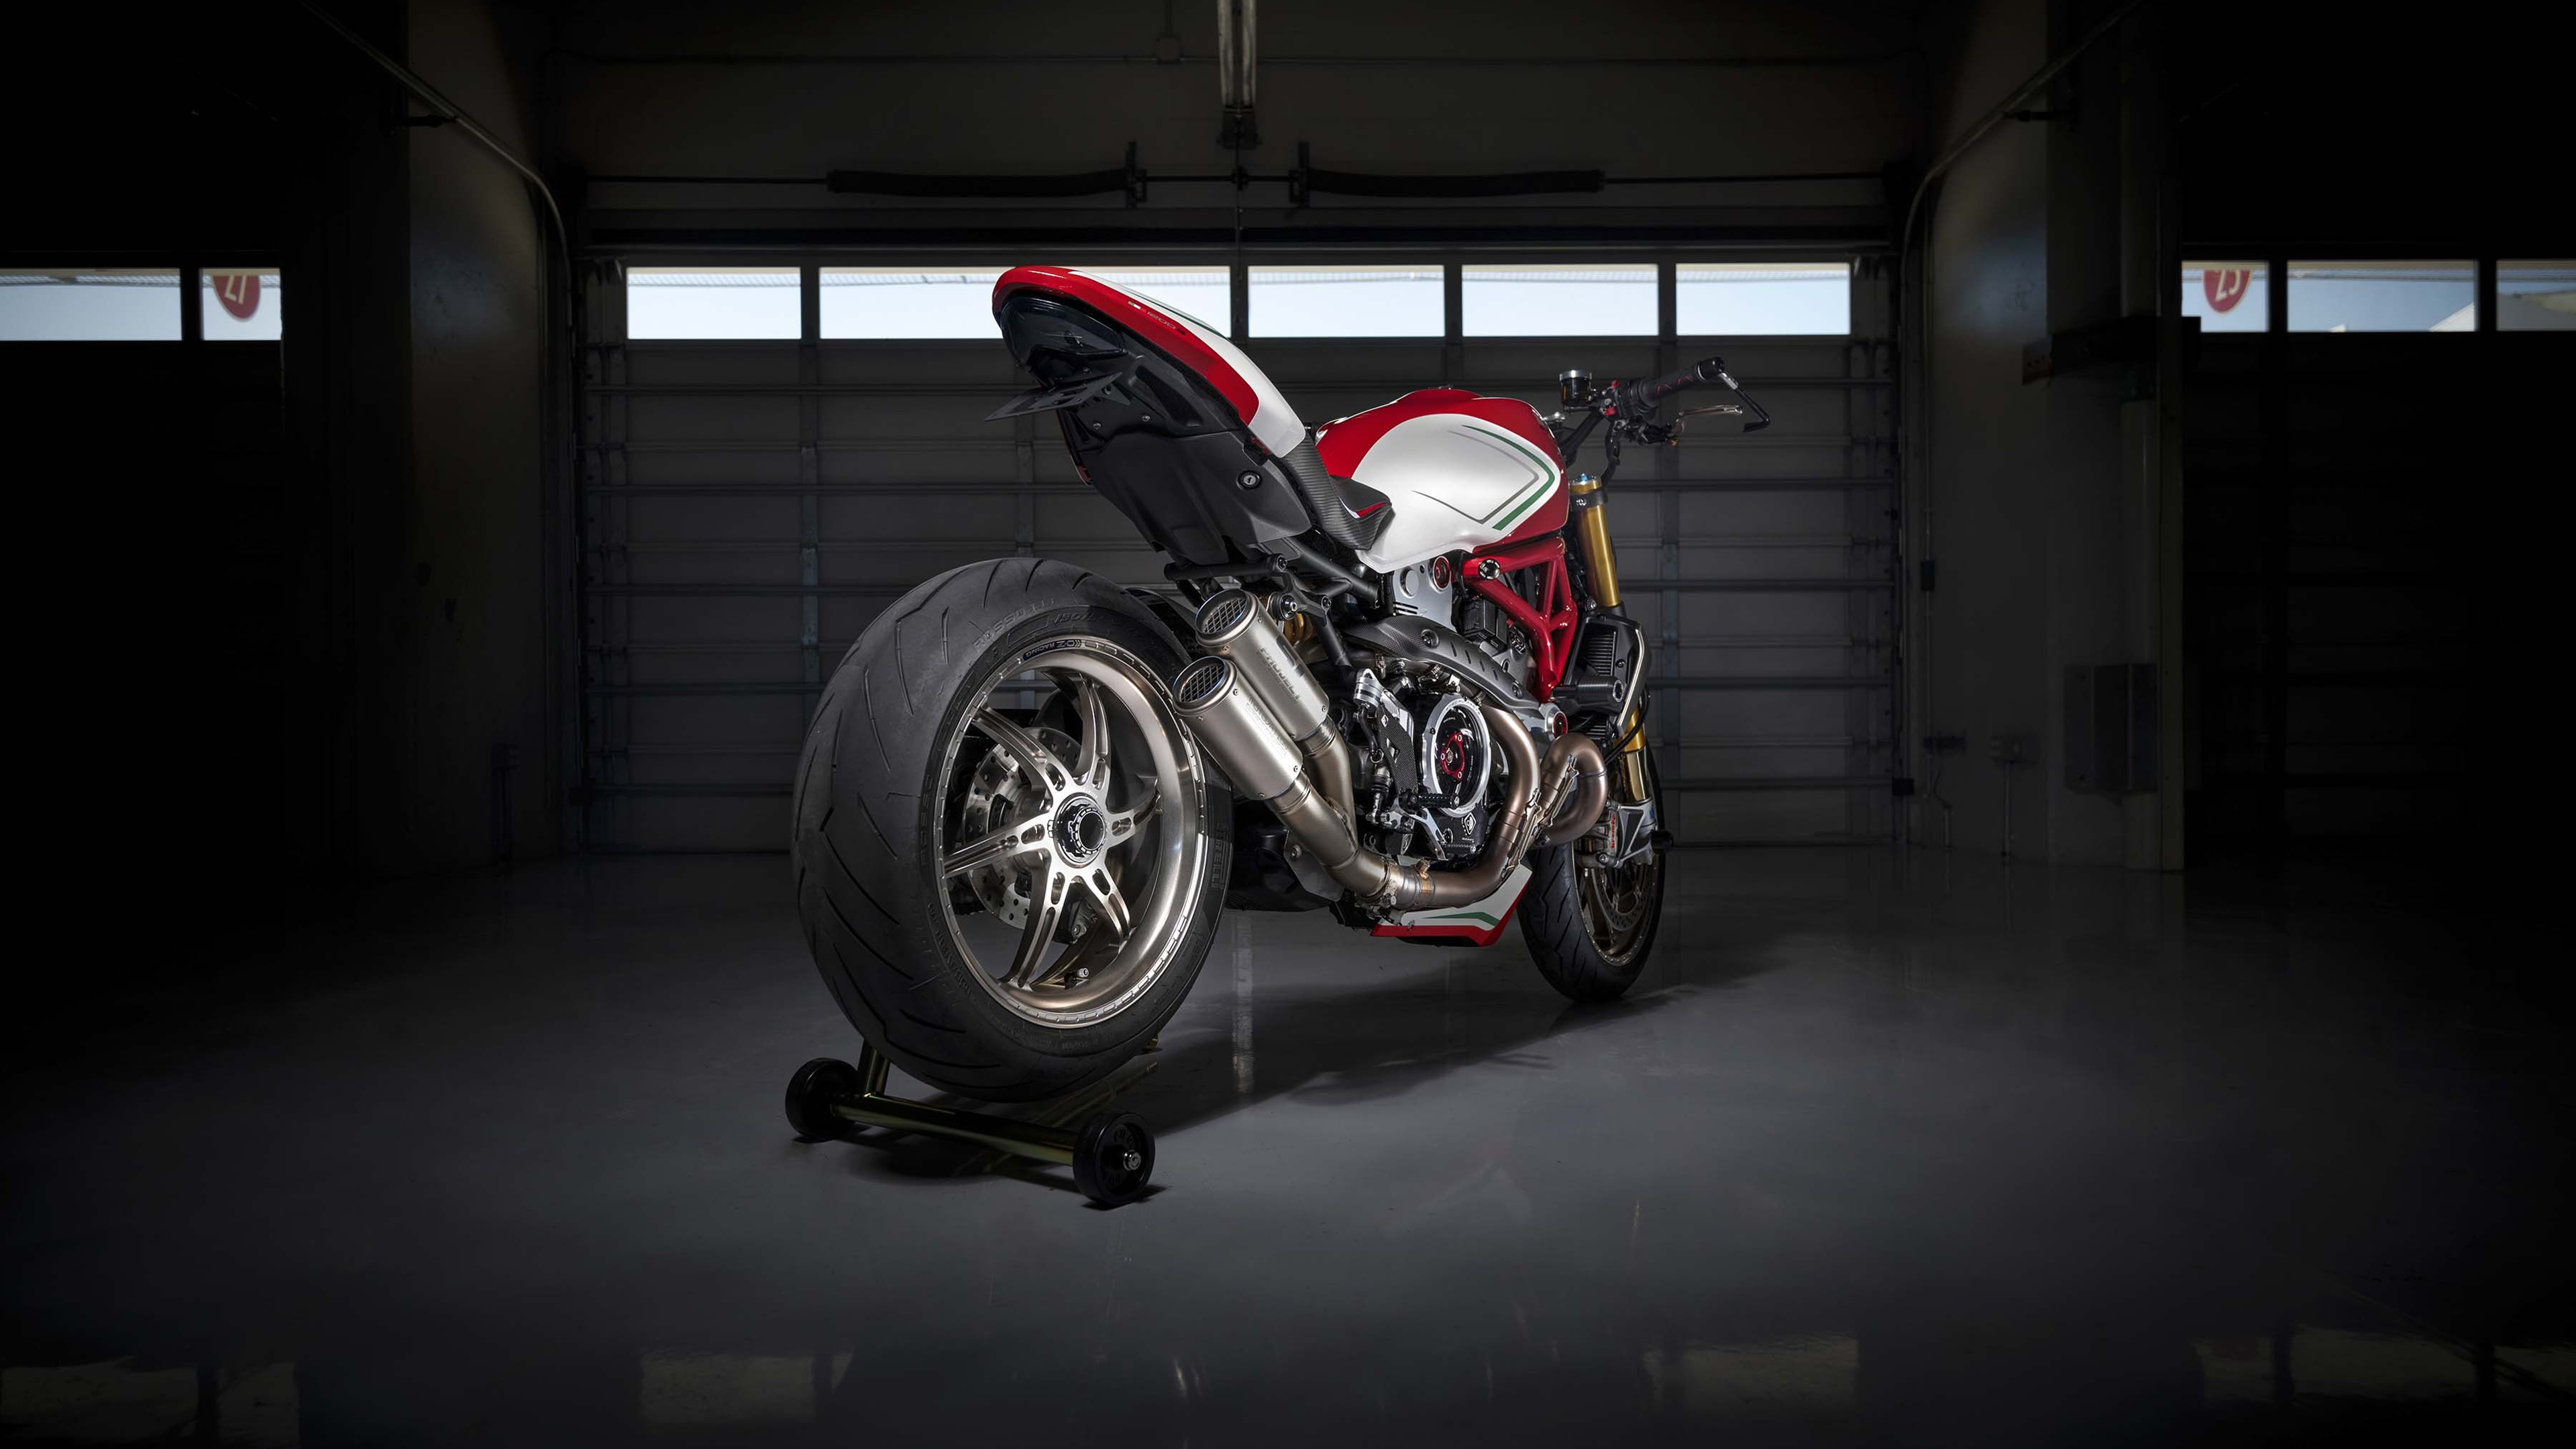 Ducati Monster 1200 Tricolore By Motovation 2019 4K Wallpapers